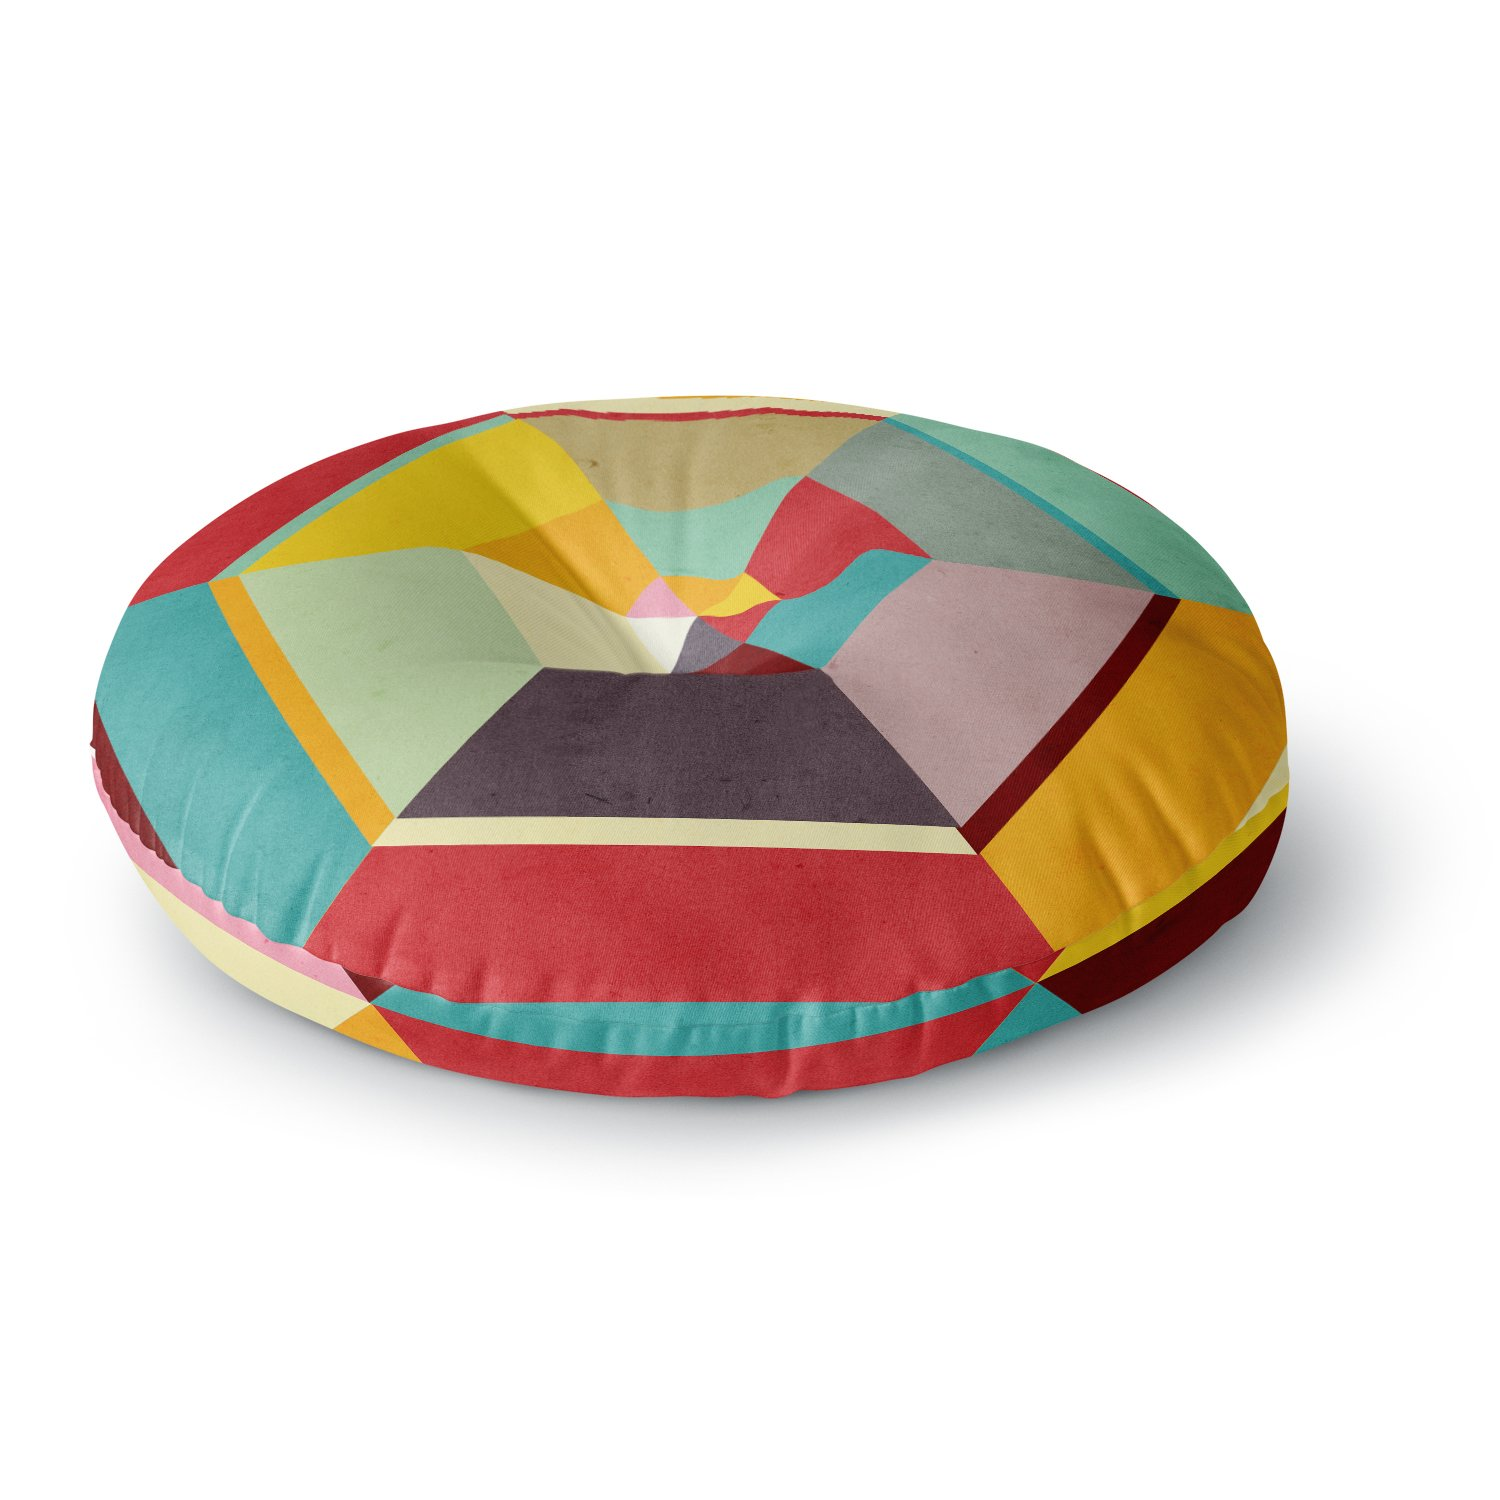 Kess InHouse Danny Ivan Color Mess 26 Round Floor Pillow